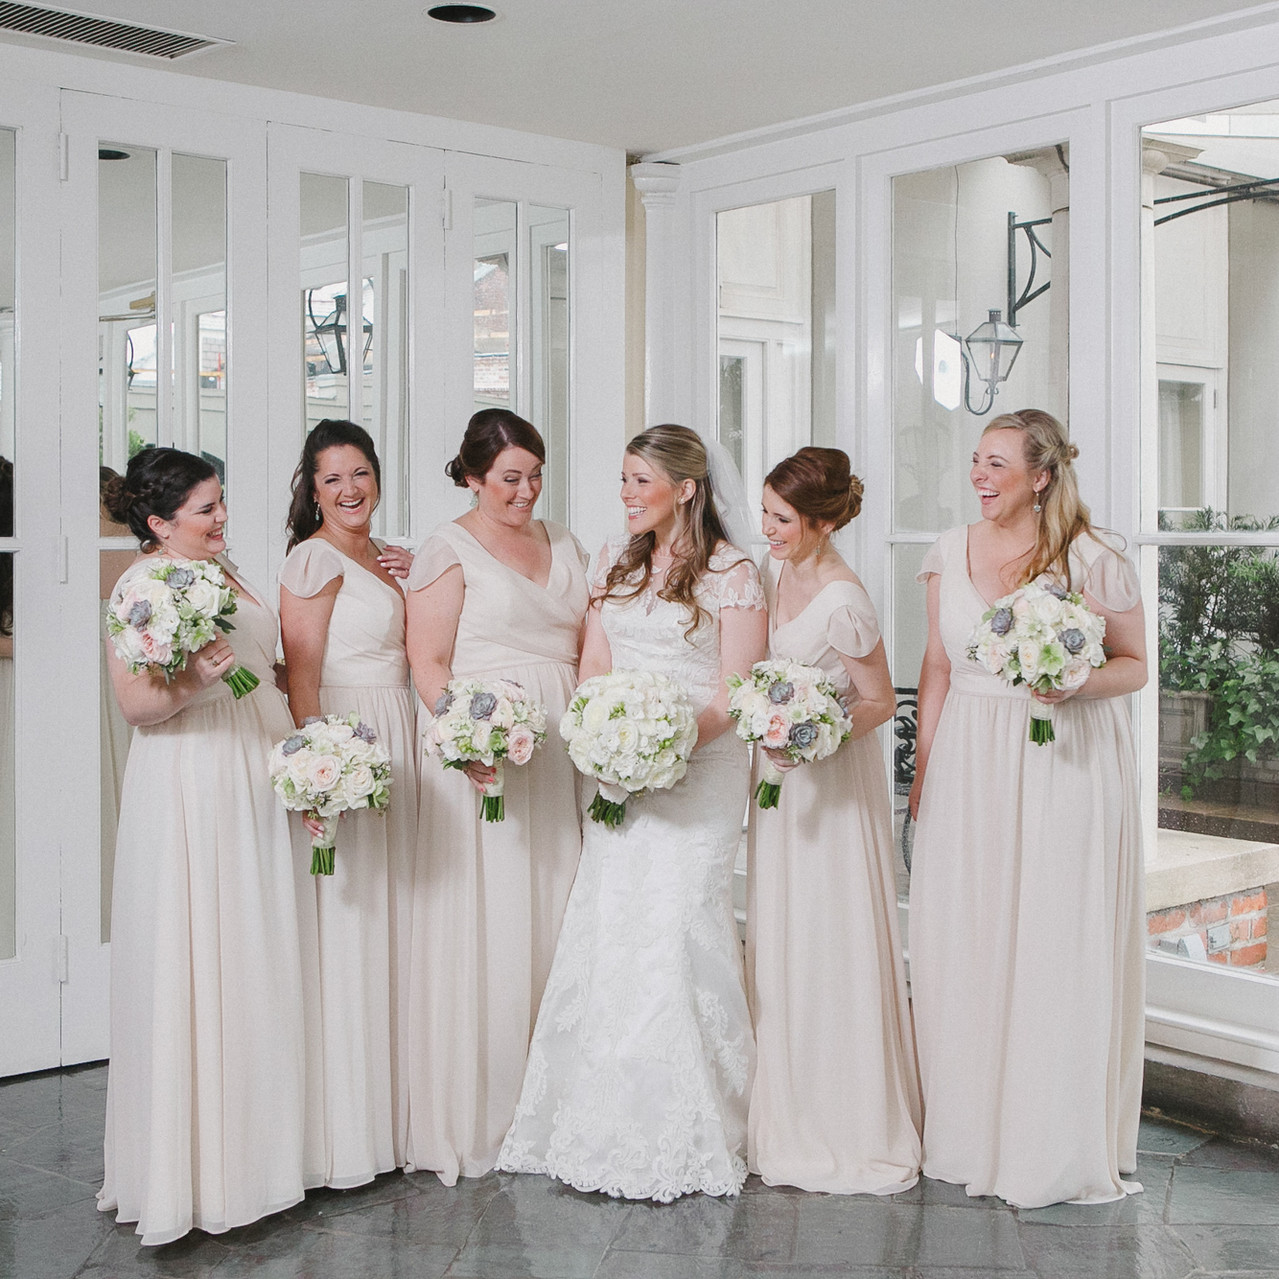 Gorgeous bride and her bridesmaids